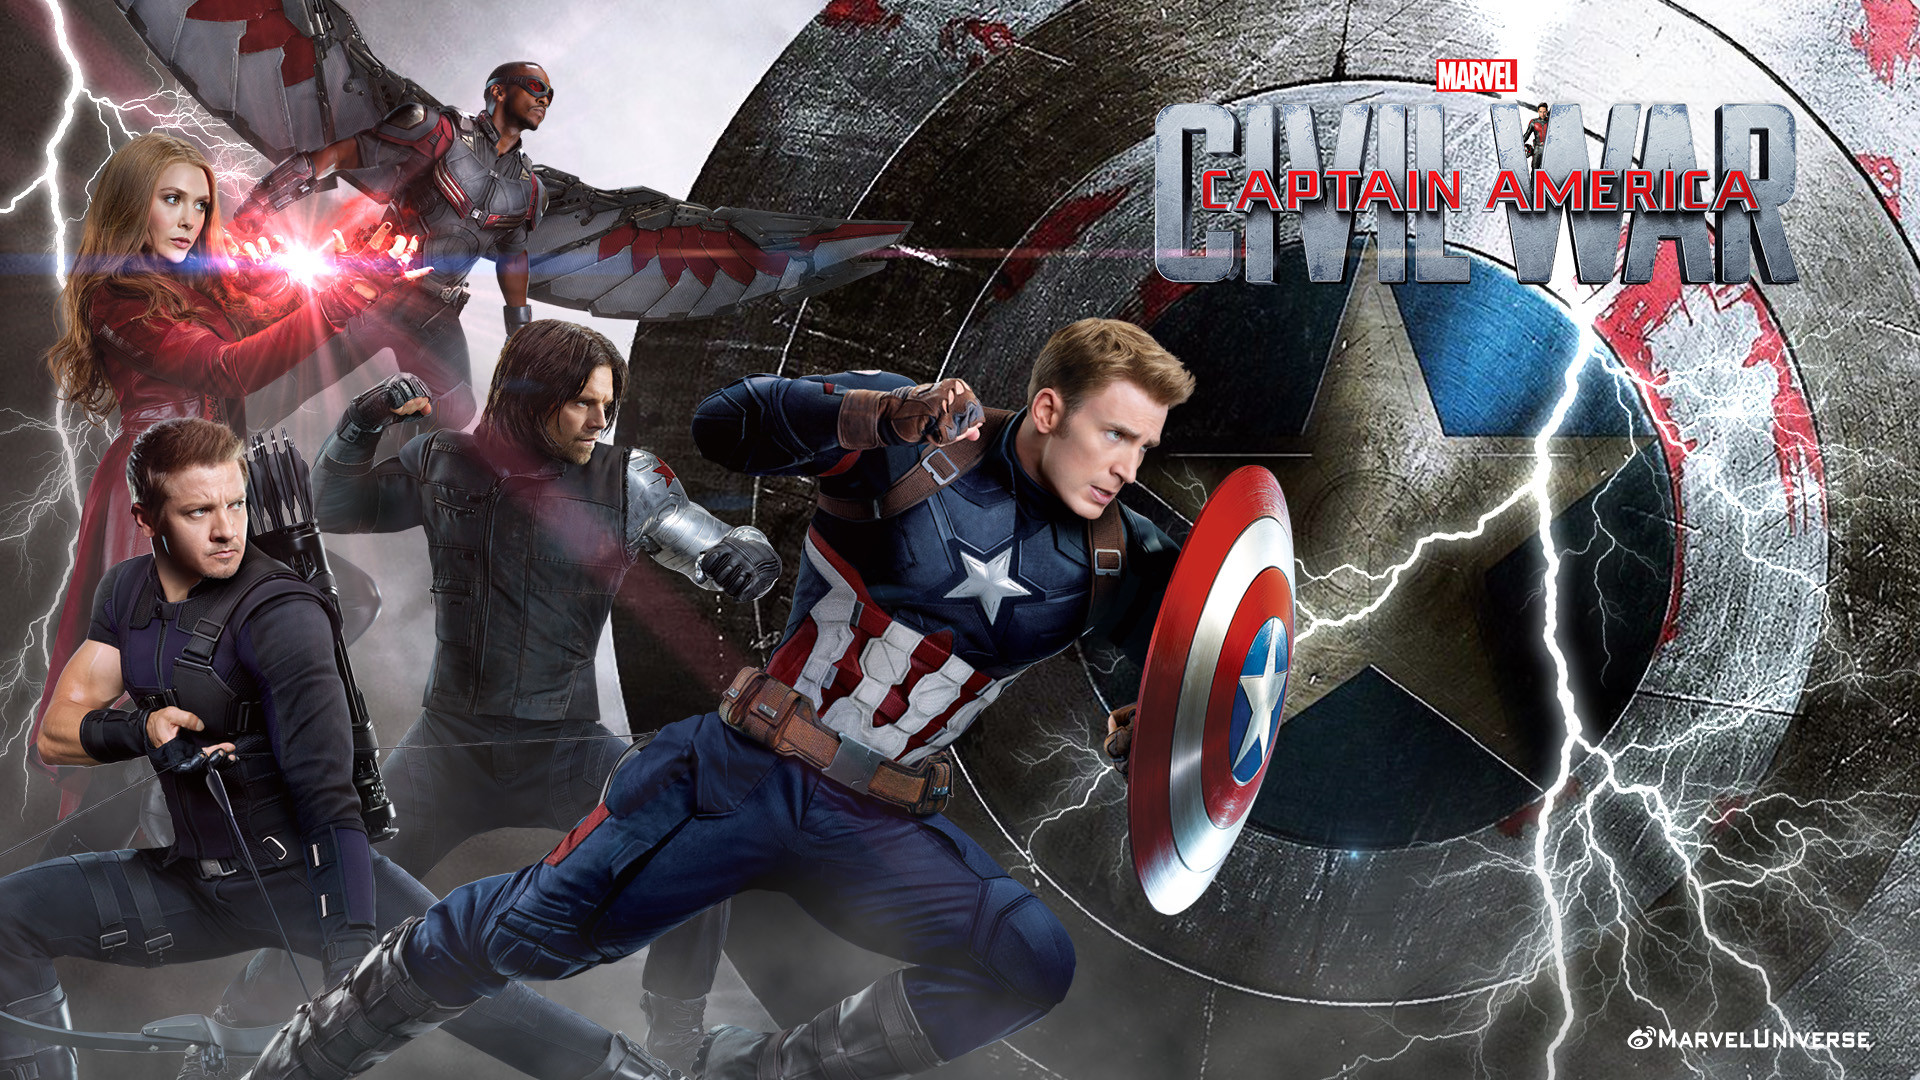 Captain America Civil War wallpapers by Chenshijie9095 Captain America  Civil War wallpapers by Chenshijie9095